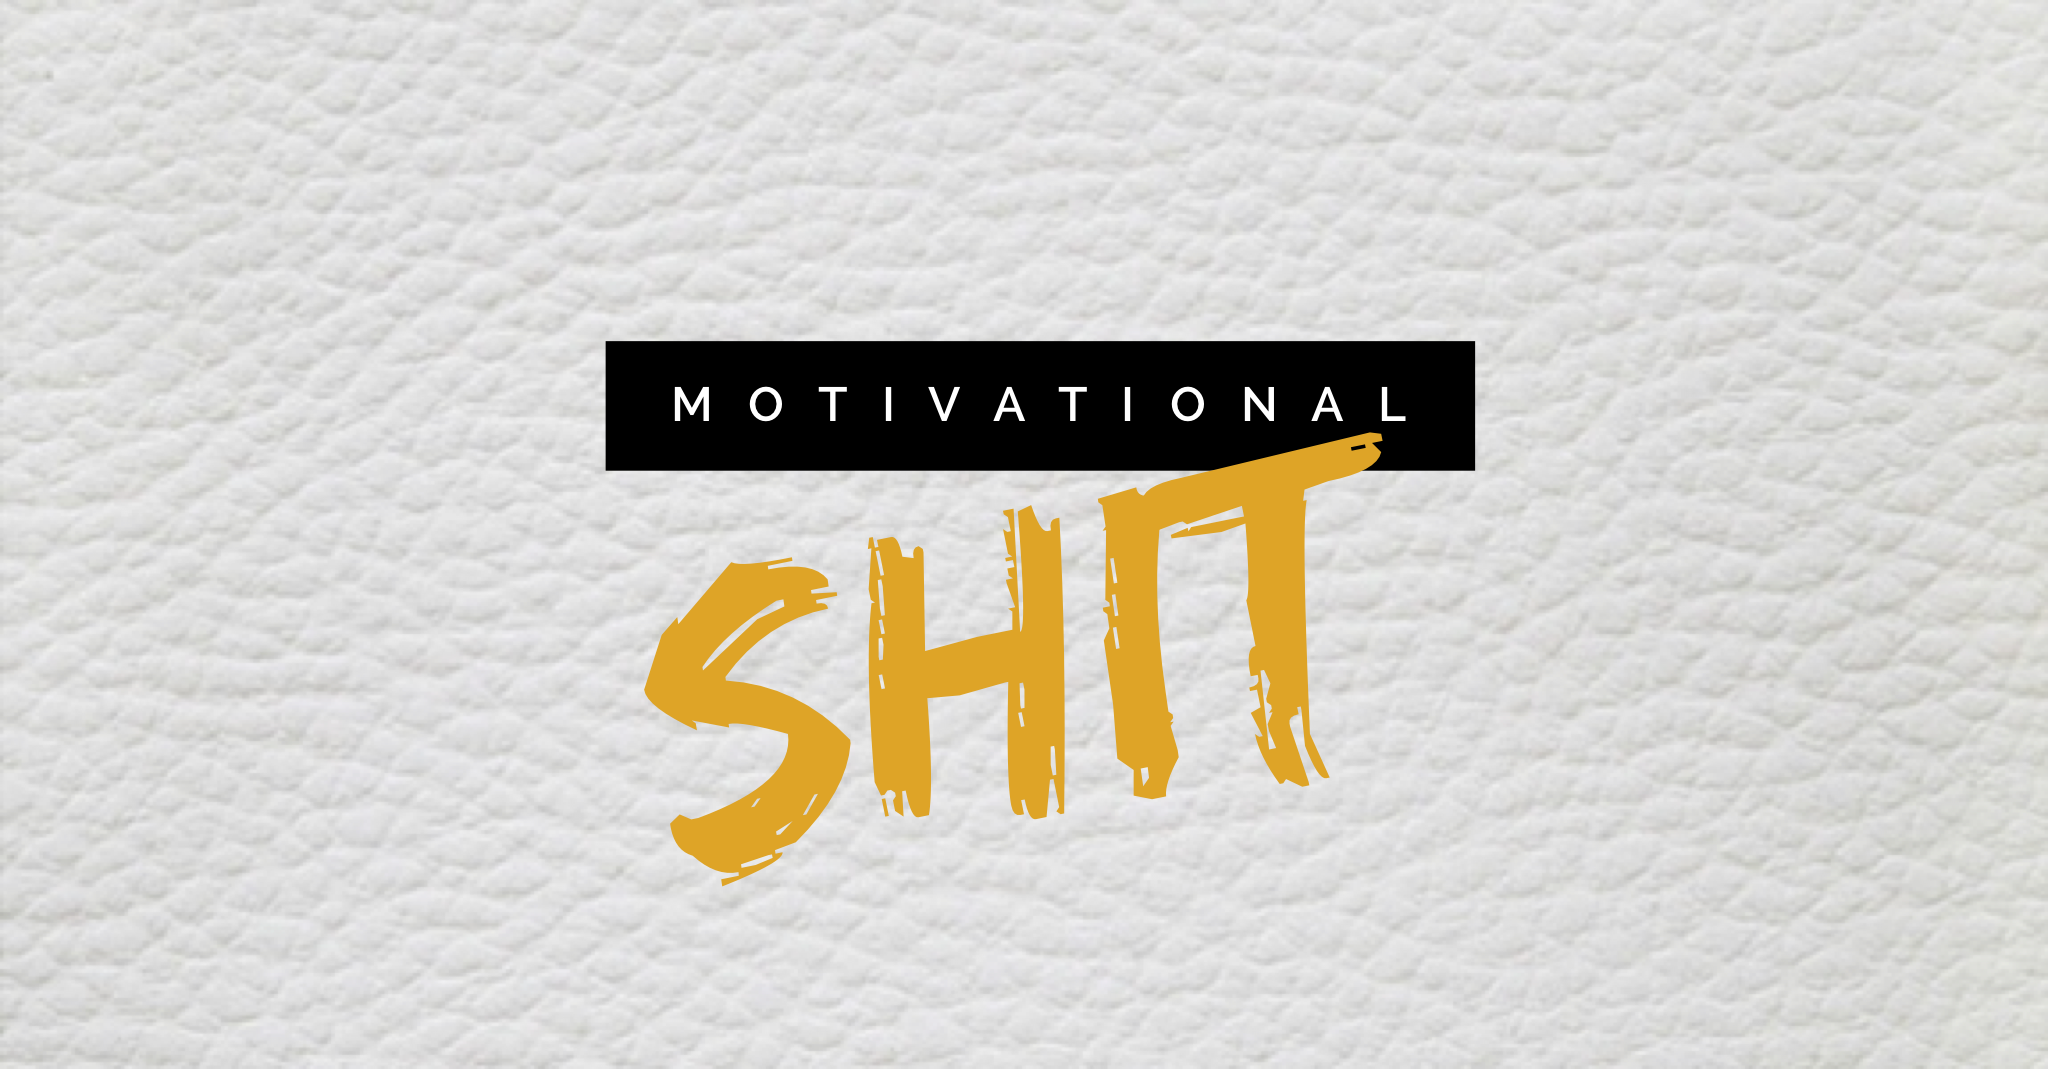 Motivational Sh*t Vol. 5